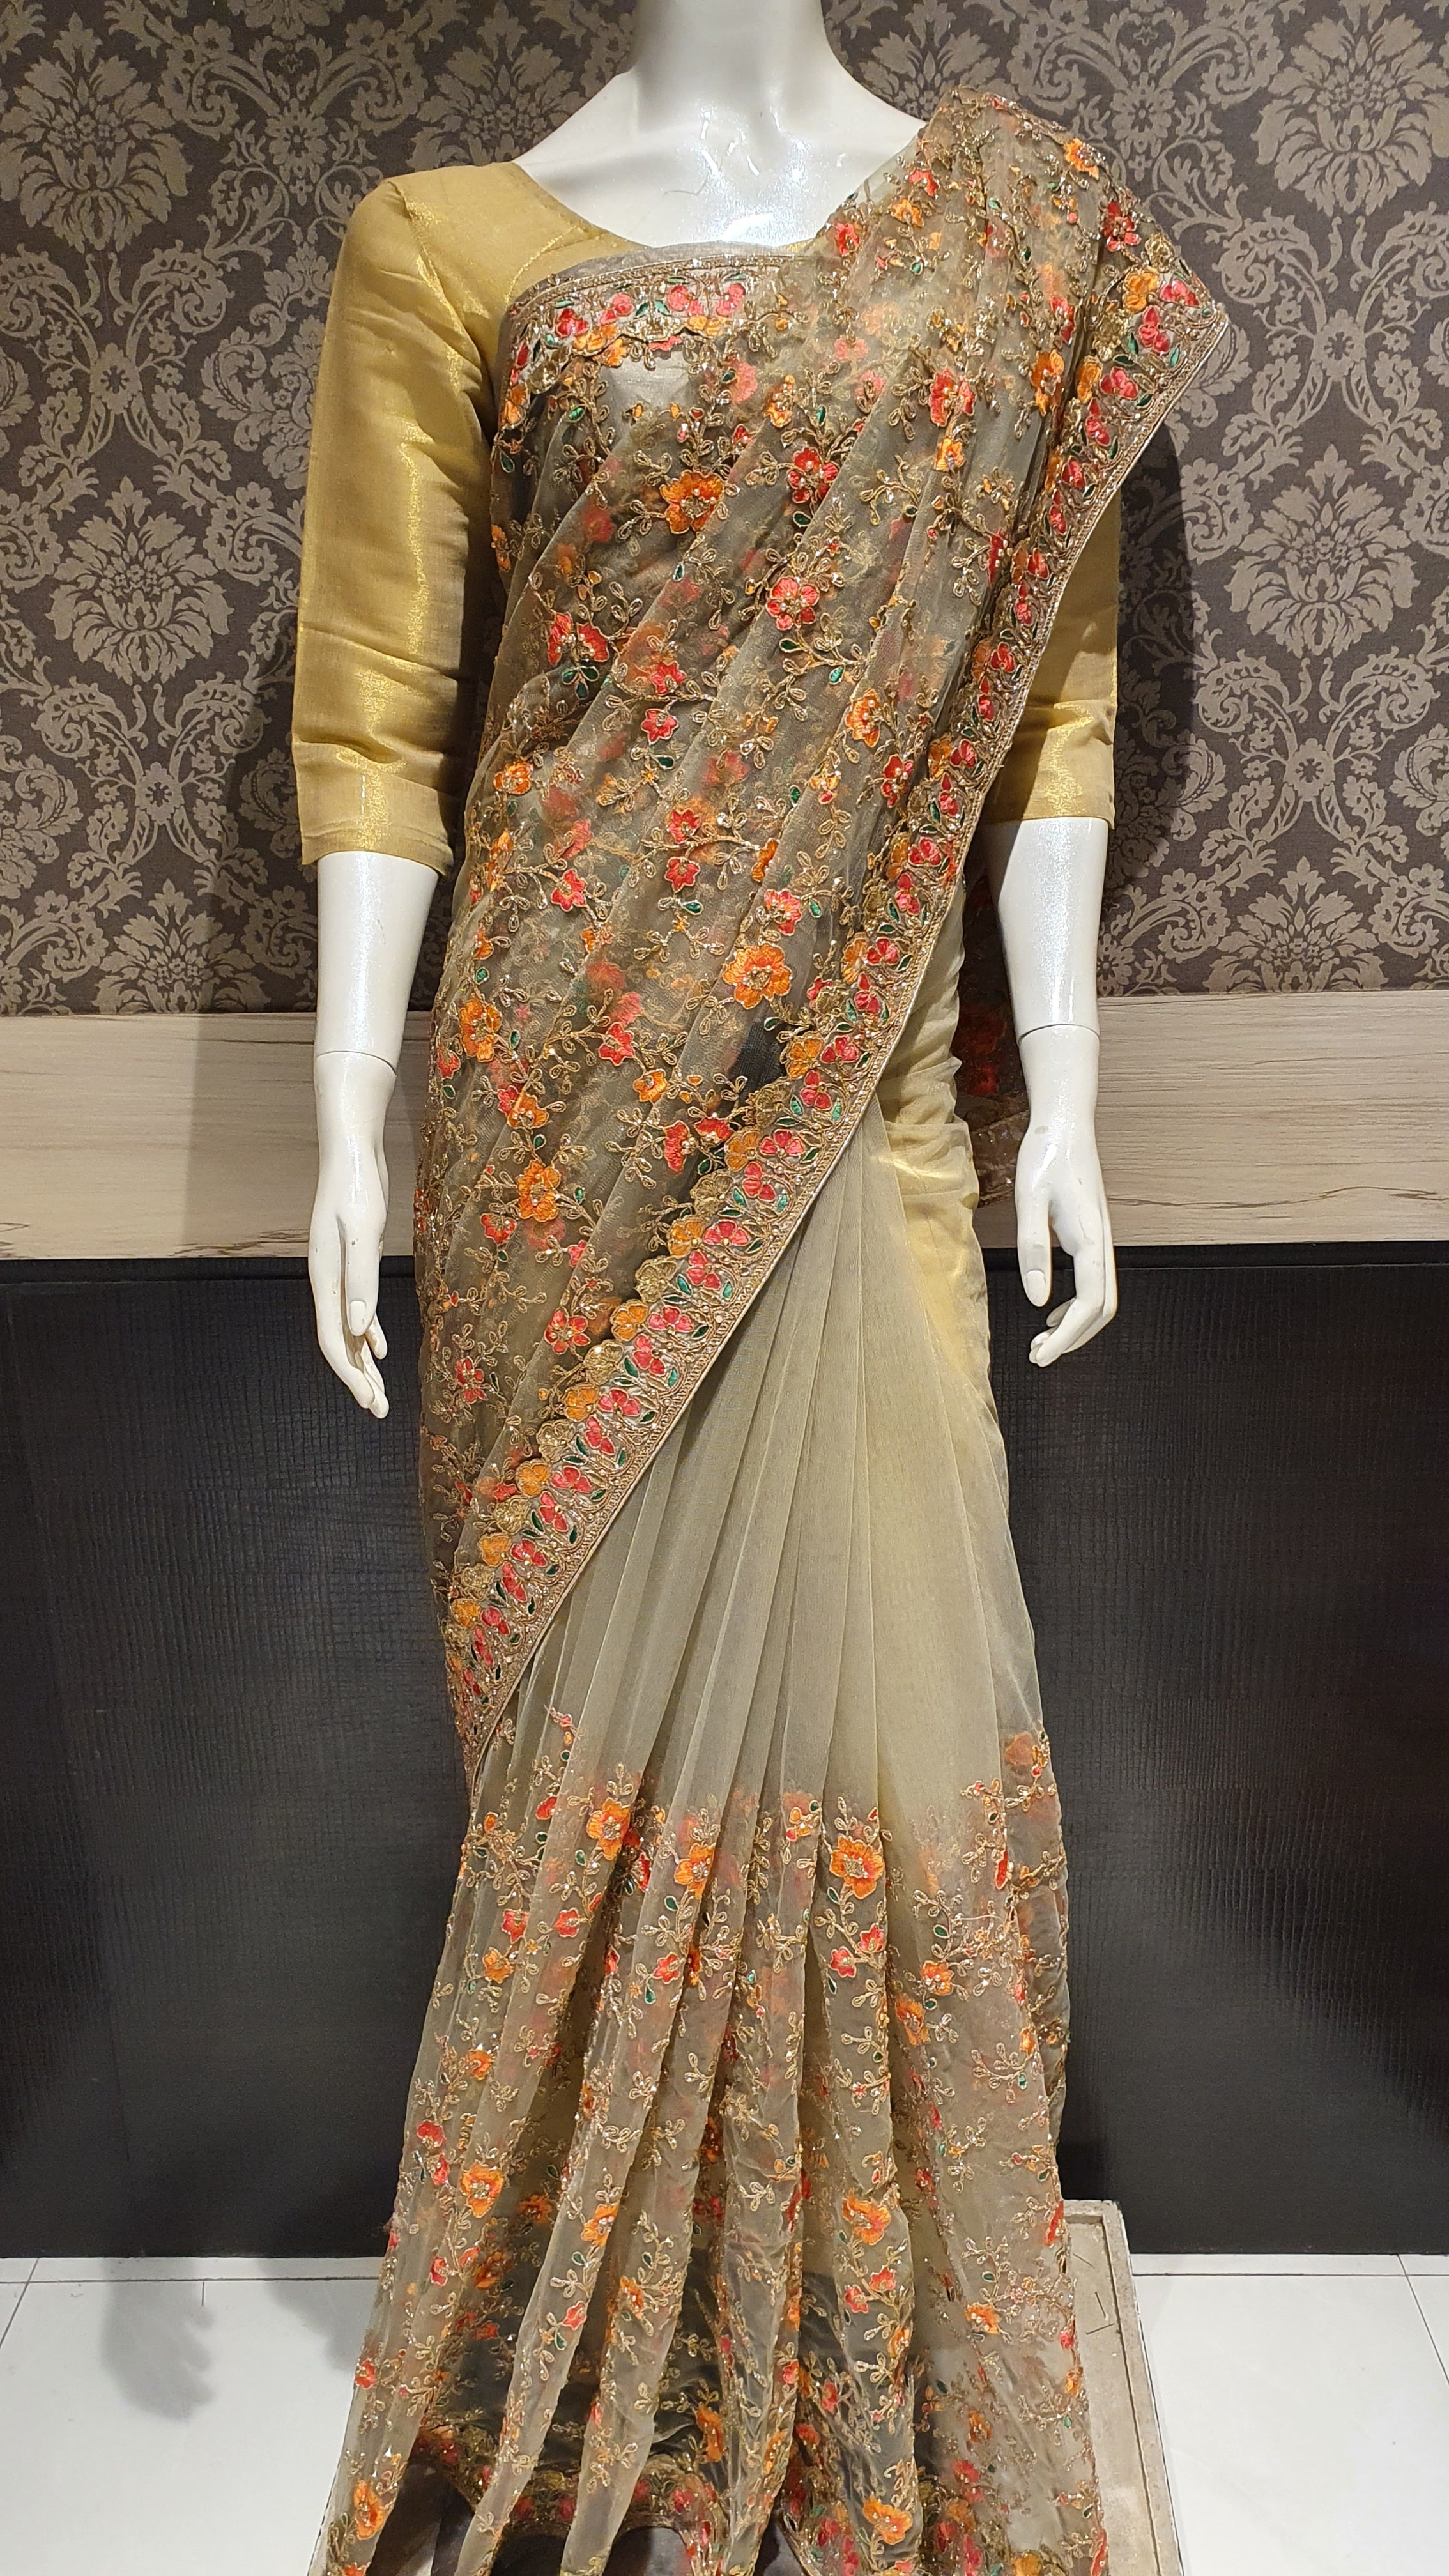 Designer Saree with Colorful Threads